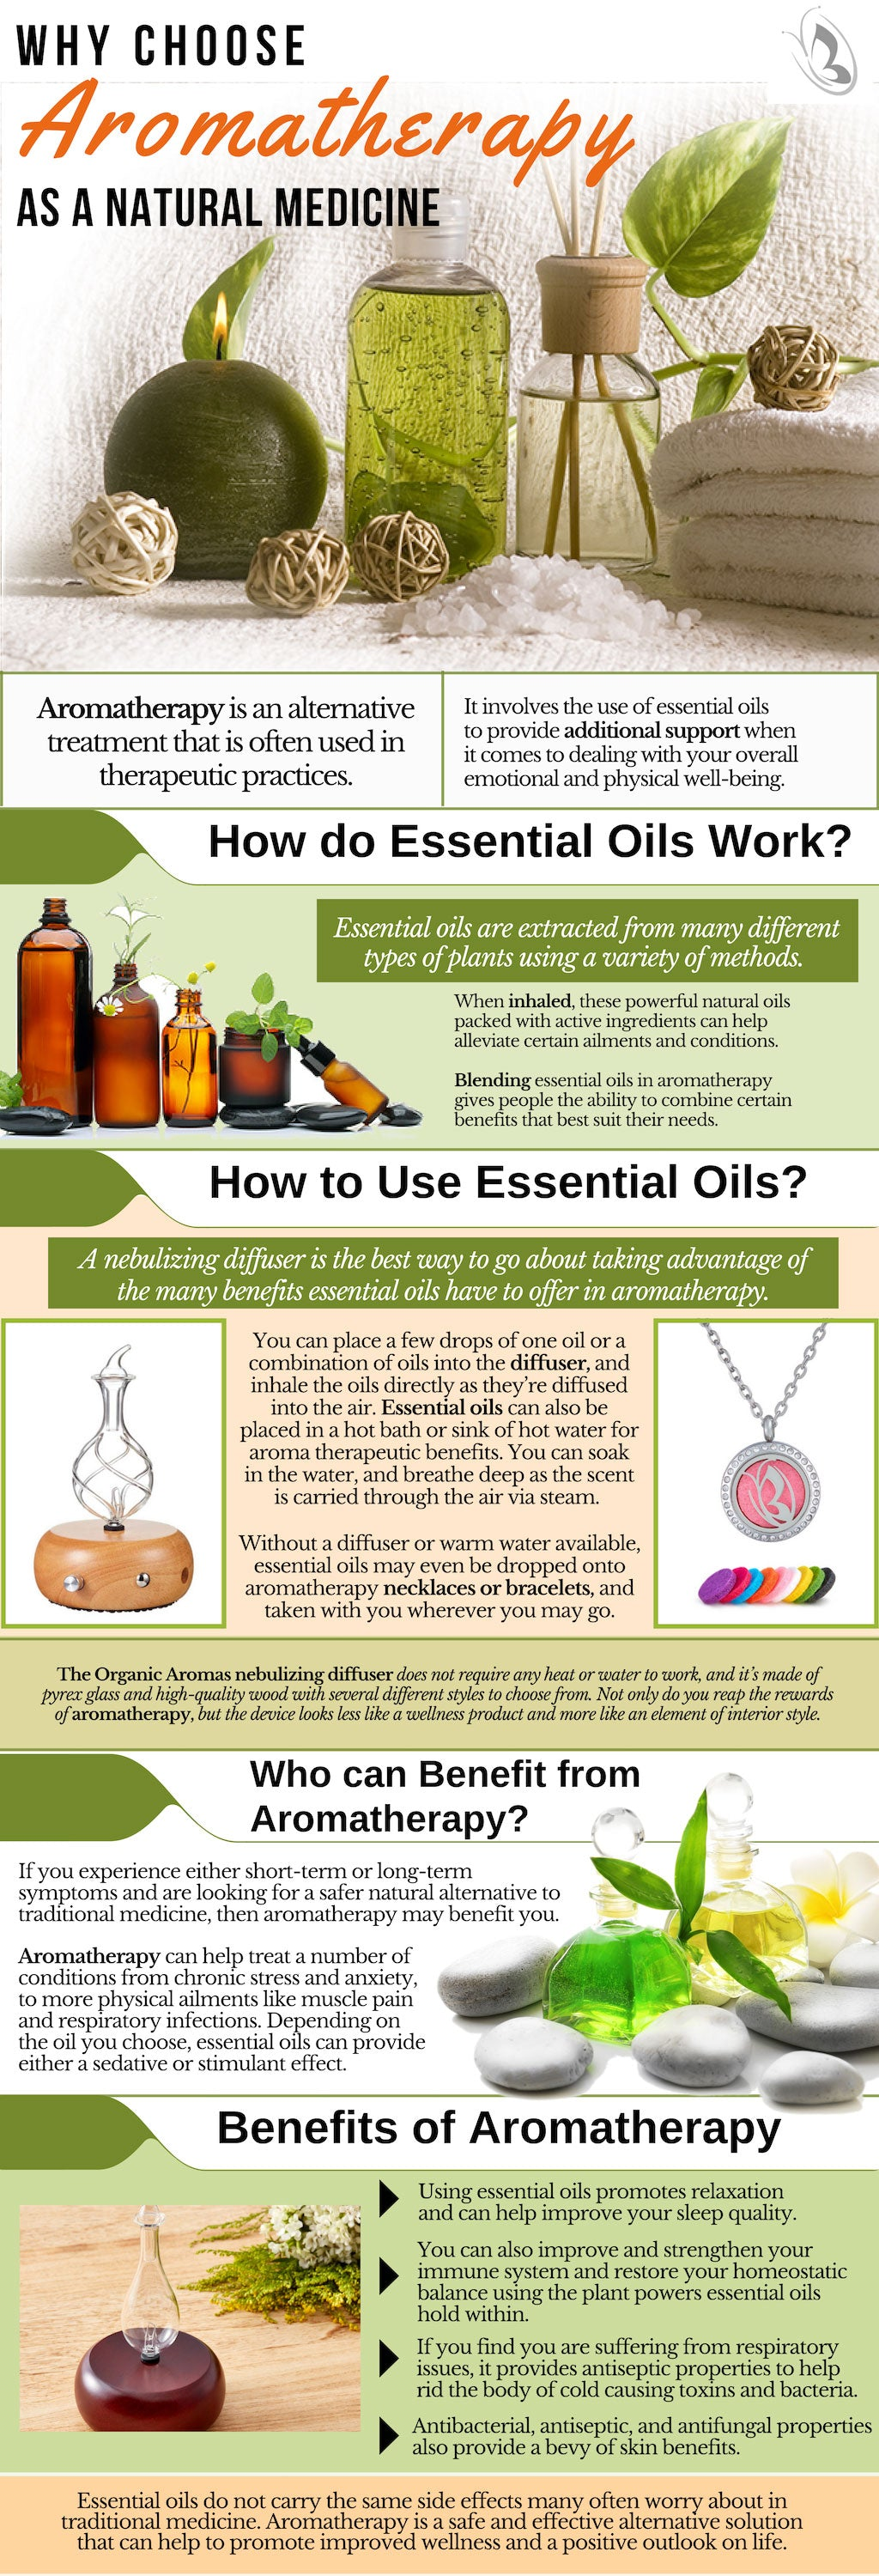 Why Choose Aromatherapy as a Natural Medicine?